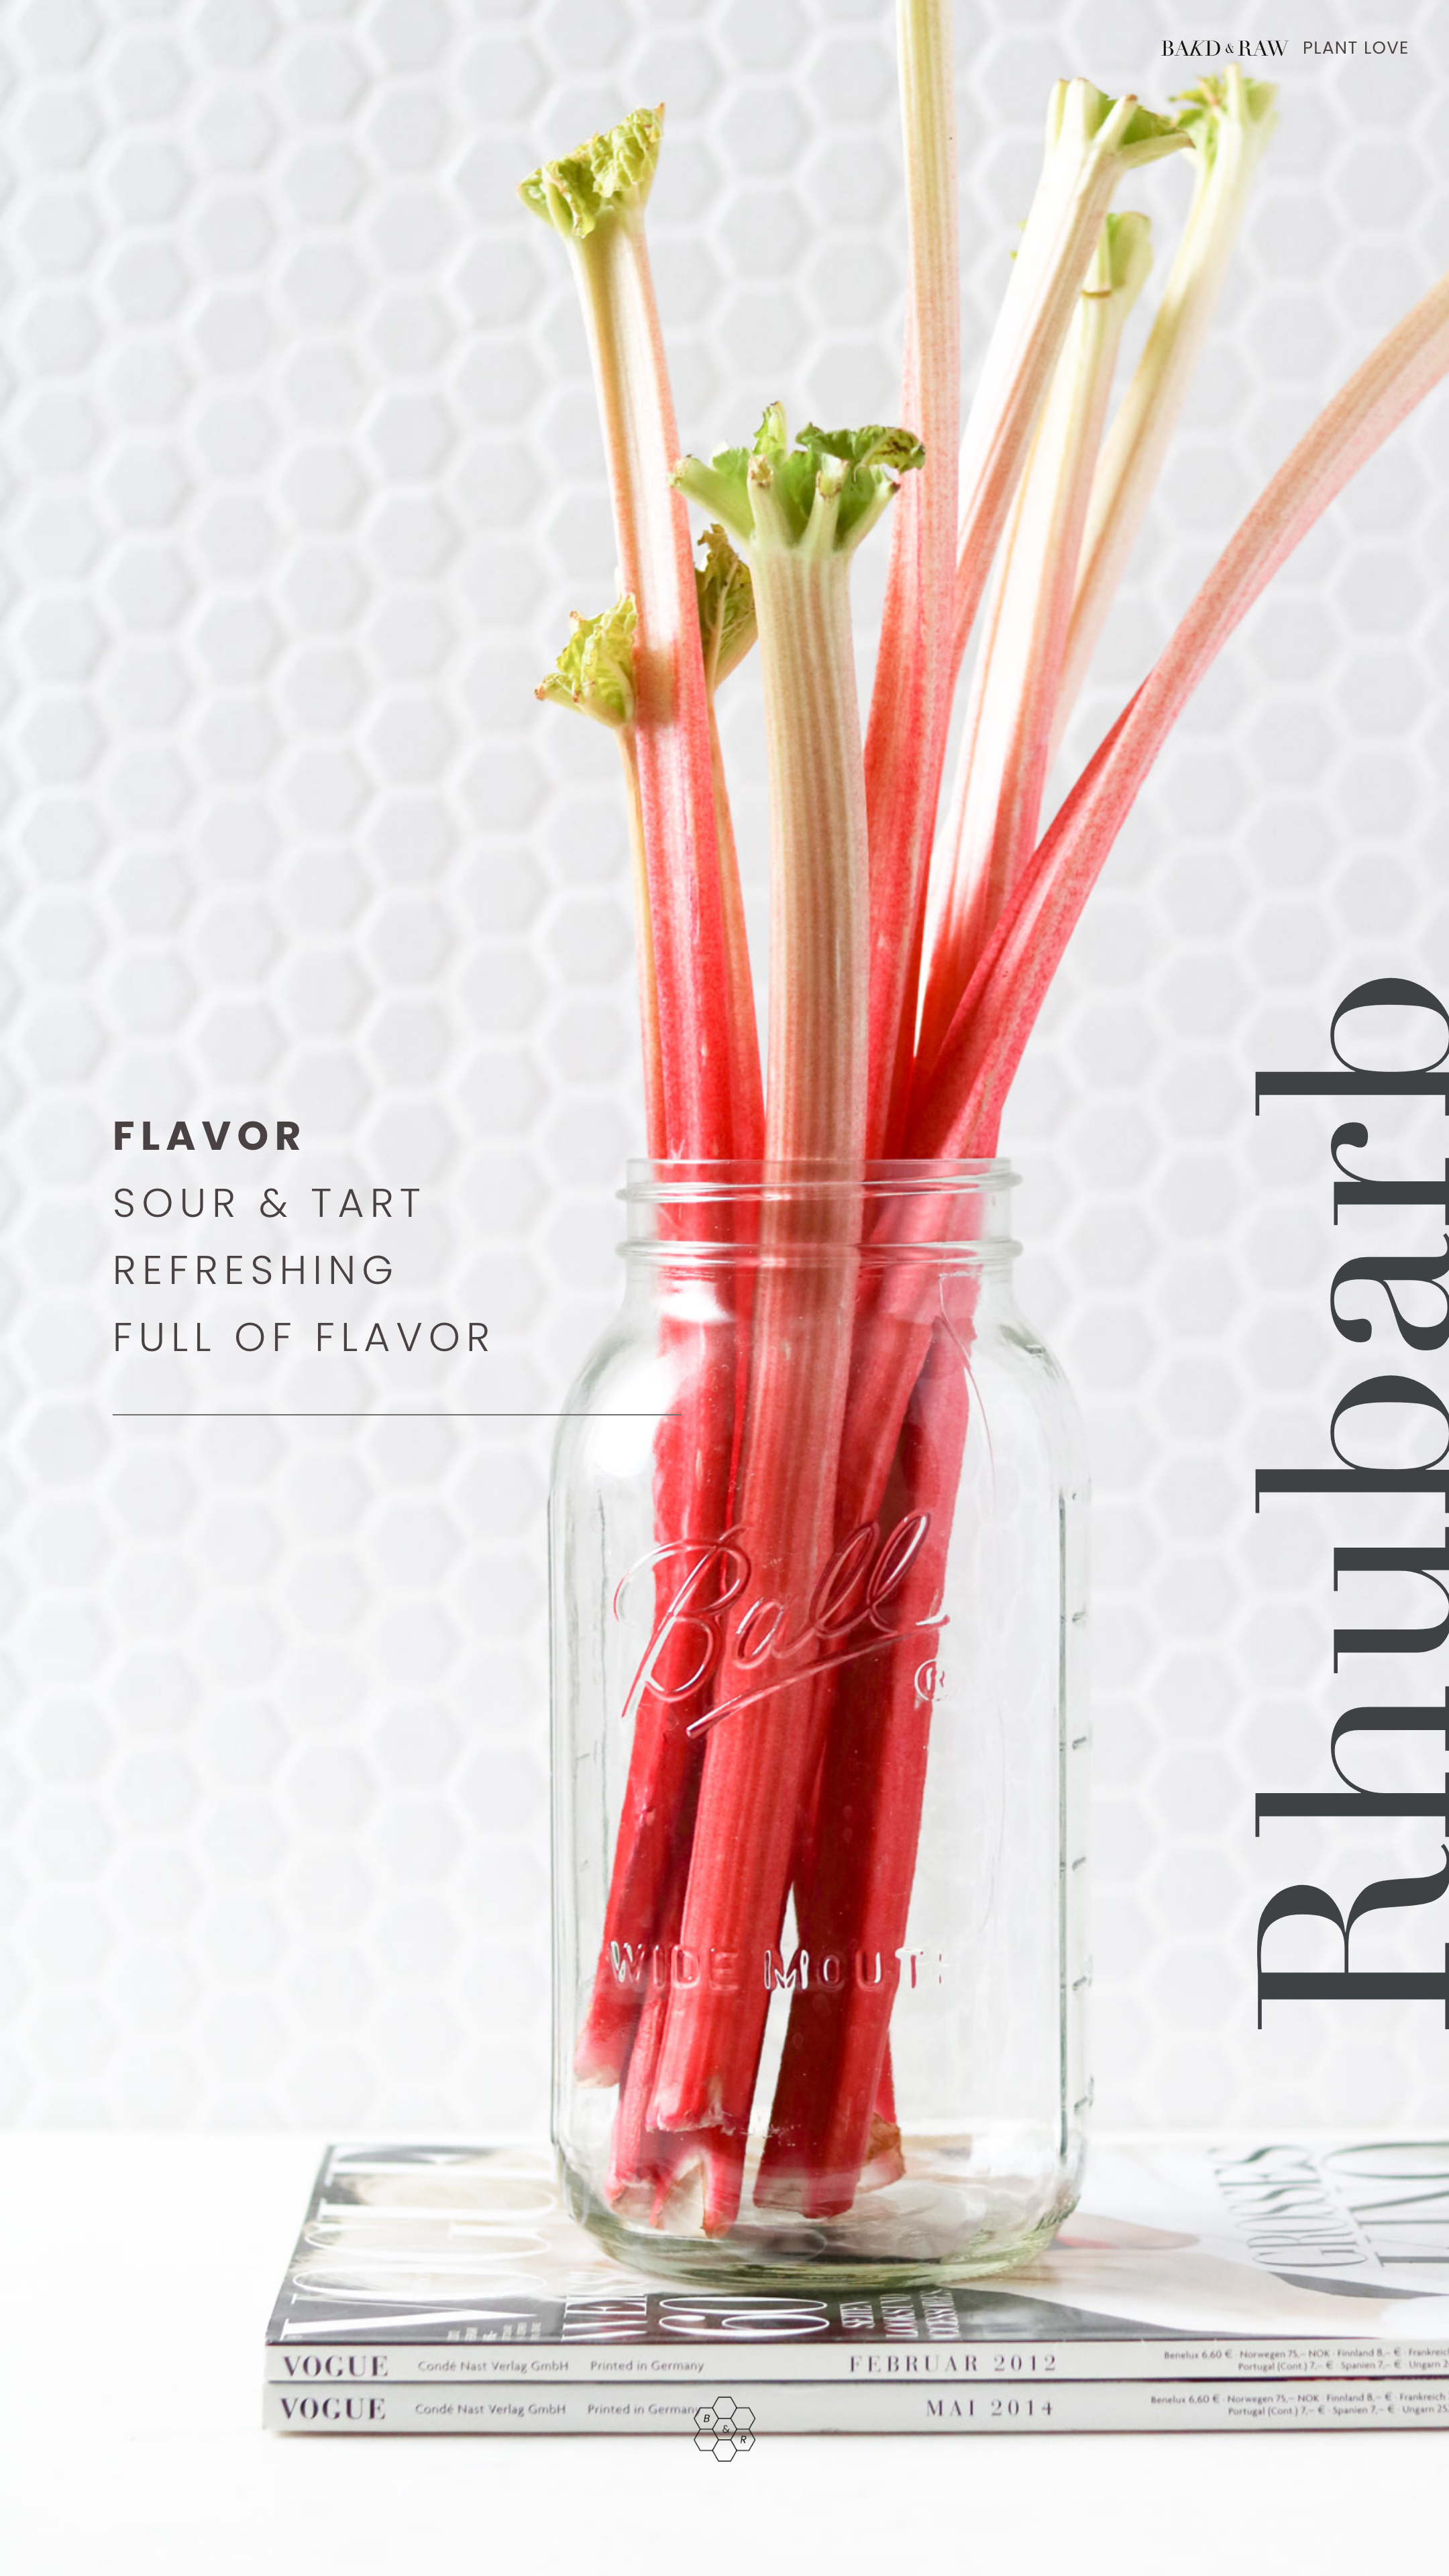 How Rhubarb Tastes by Bakd&Raw, Karolin Baitinger